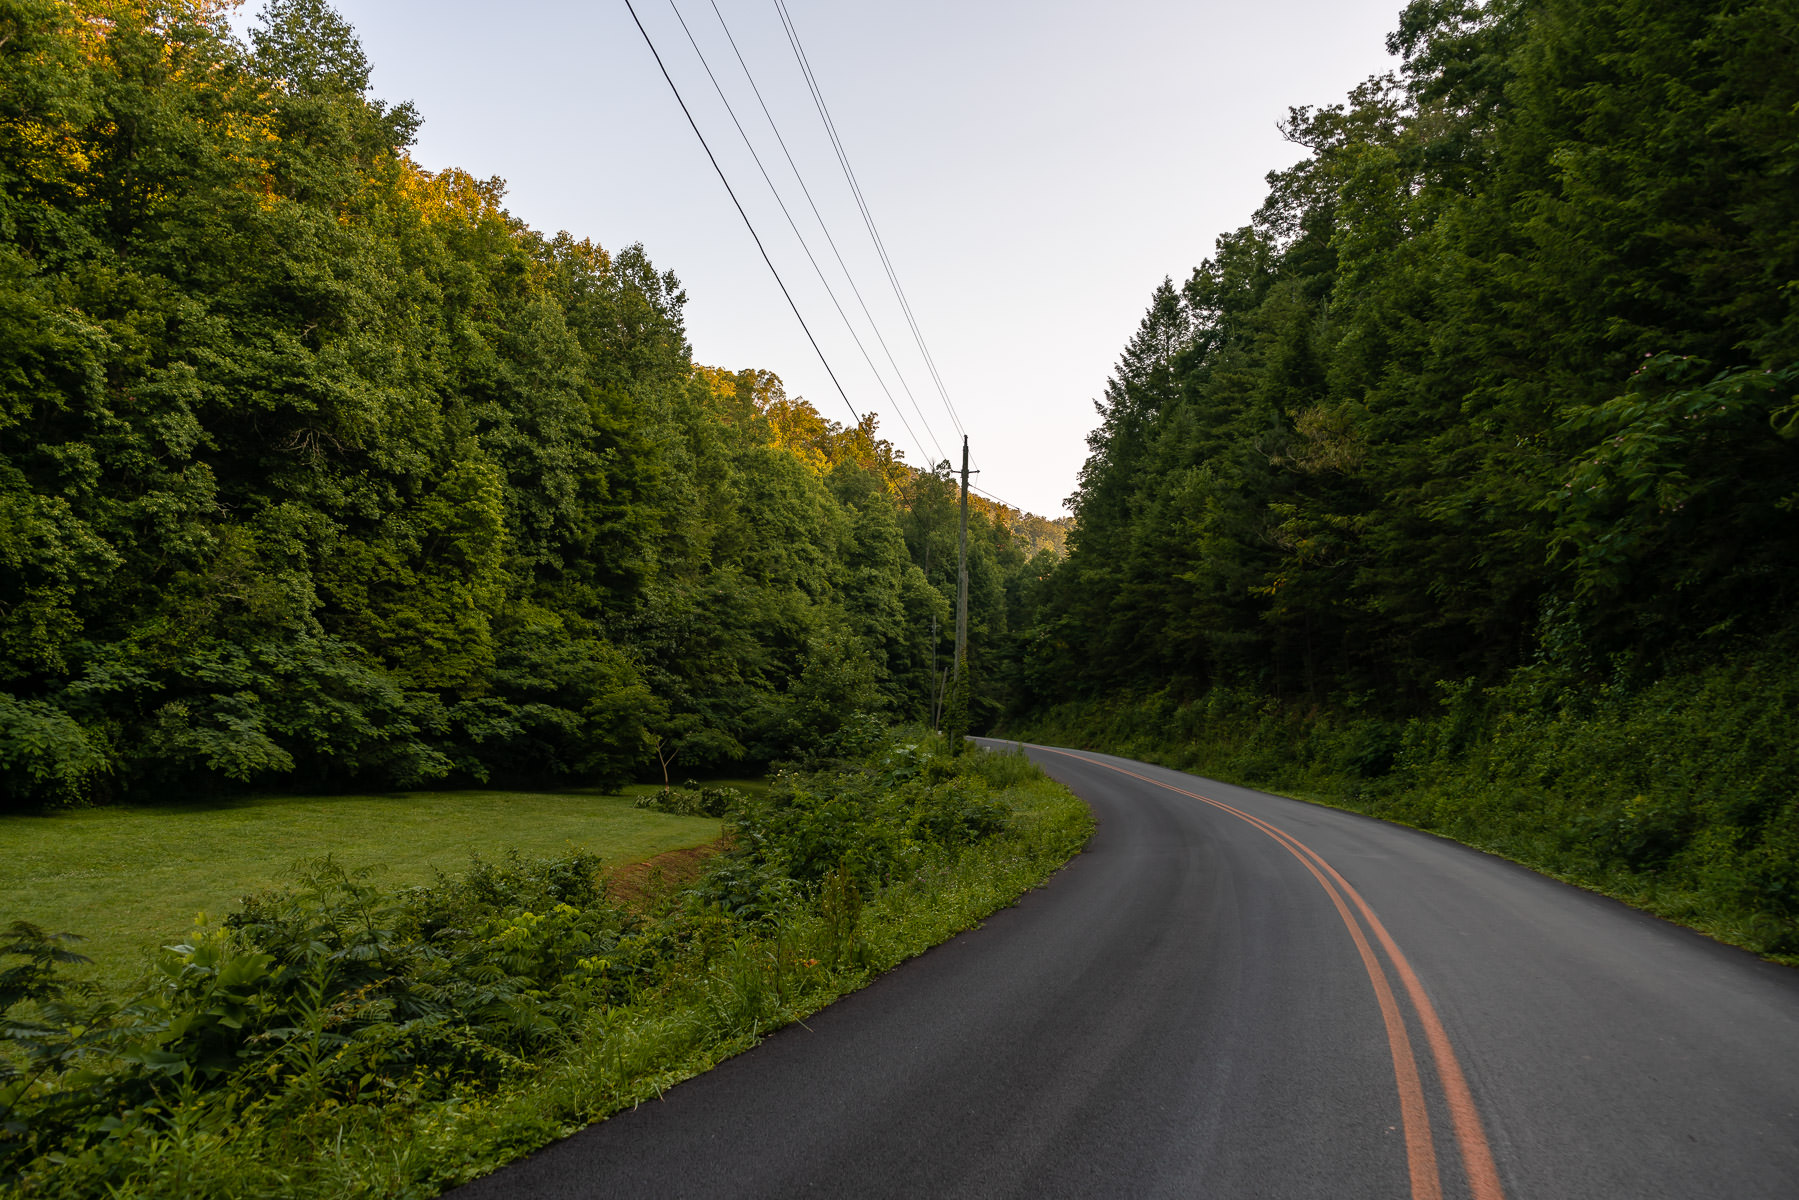 A road carves through the forest near Pigeon Forge, Tennessee.